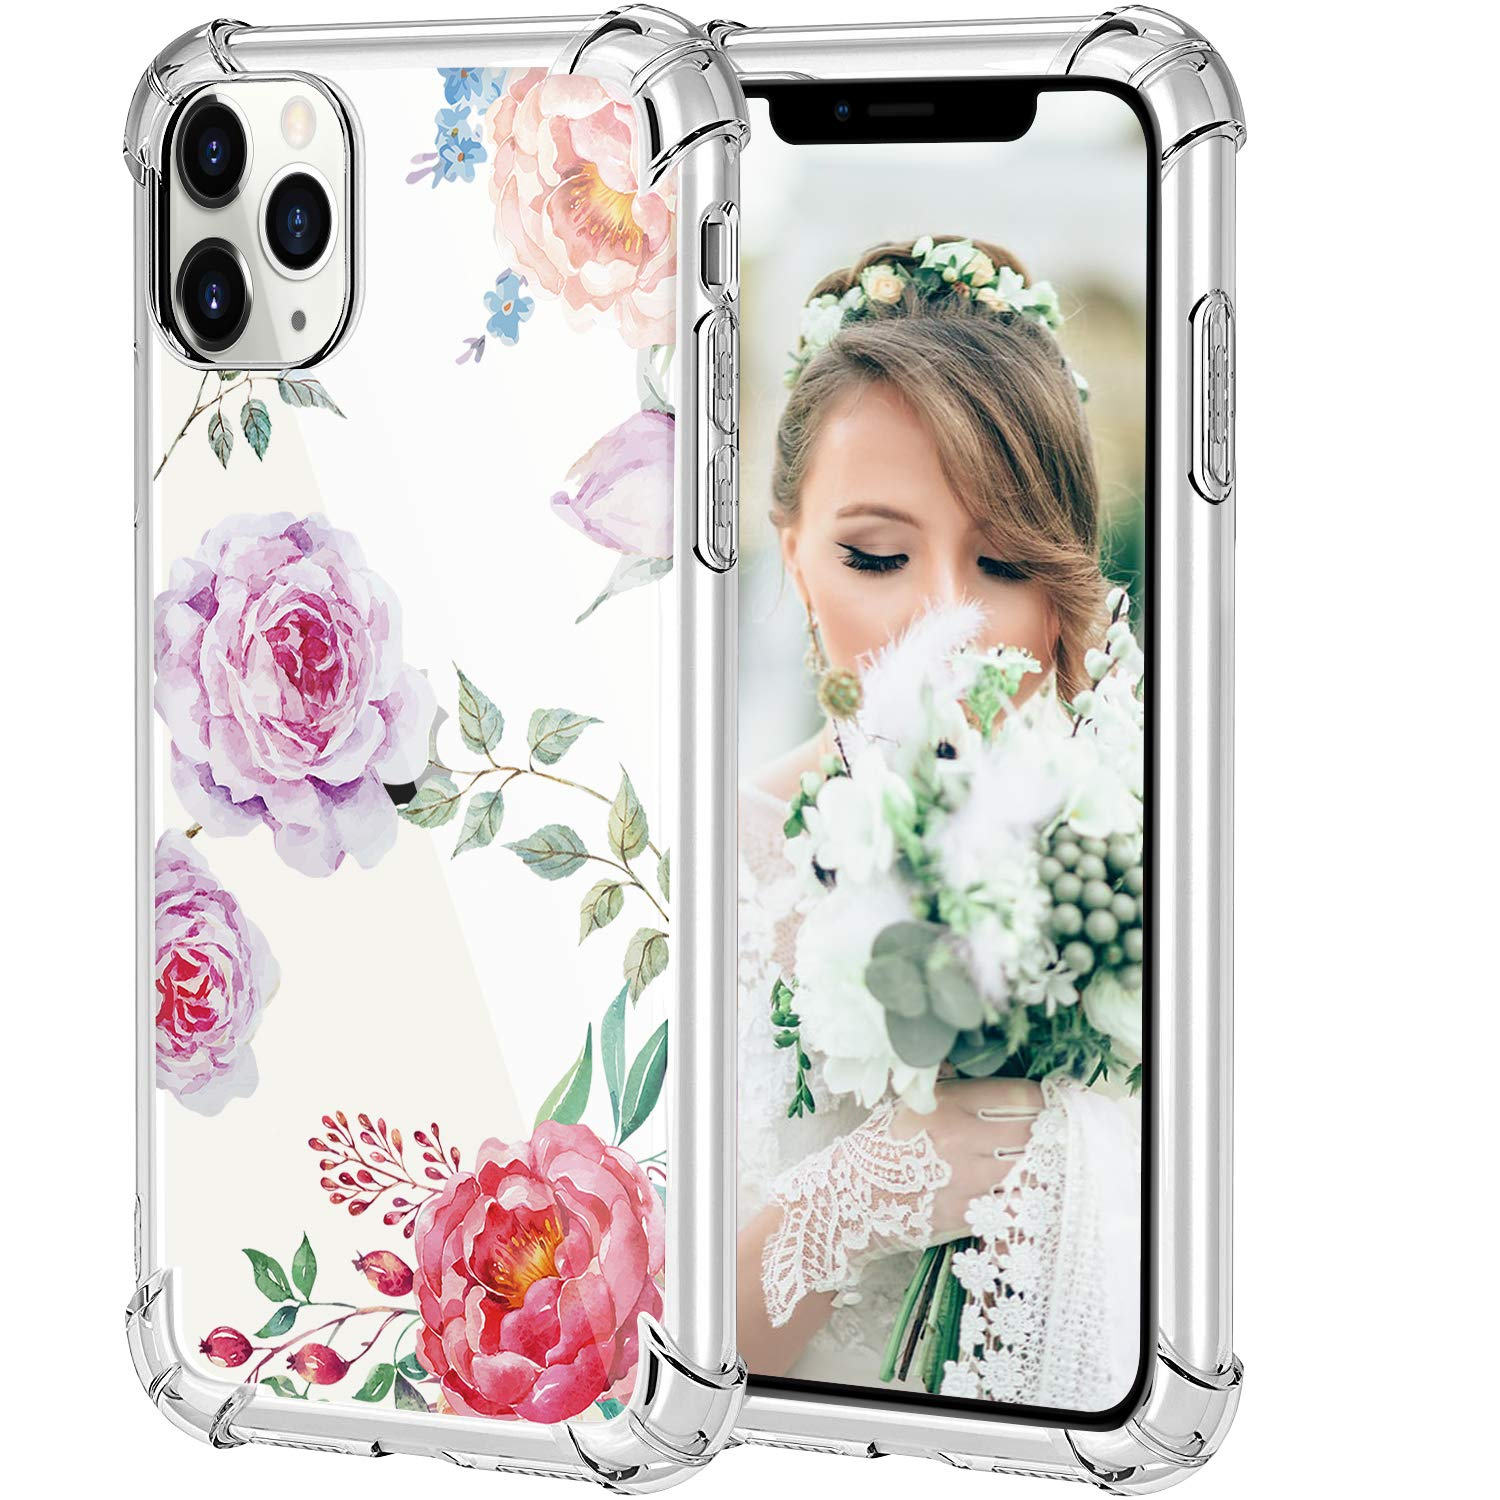 HBorna Case for iPhone 11 Pro, Soft Silicone Clear Cover for Women, with Design Floral Pattern, Slim Protective TPU Case for 2019 iPhone 11 Pro 5.8 Inch, Peony